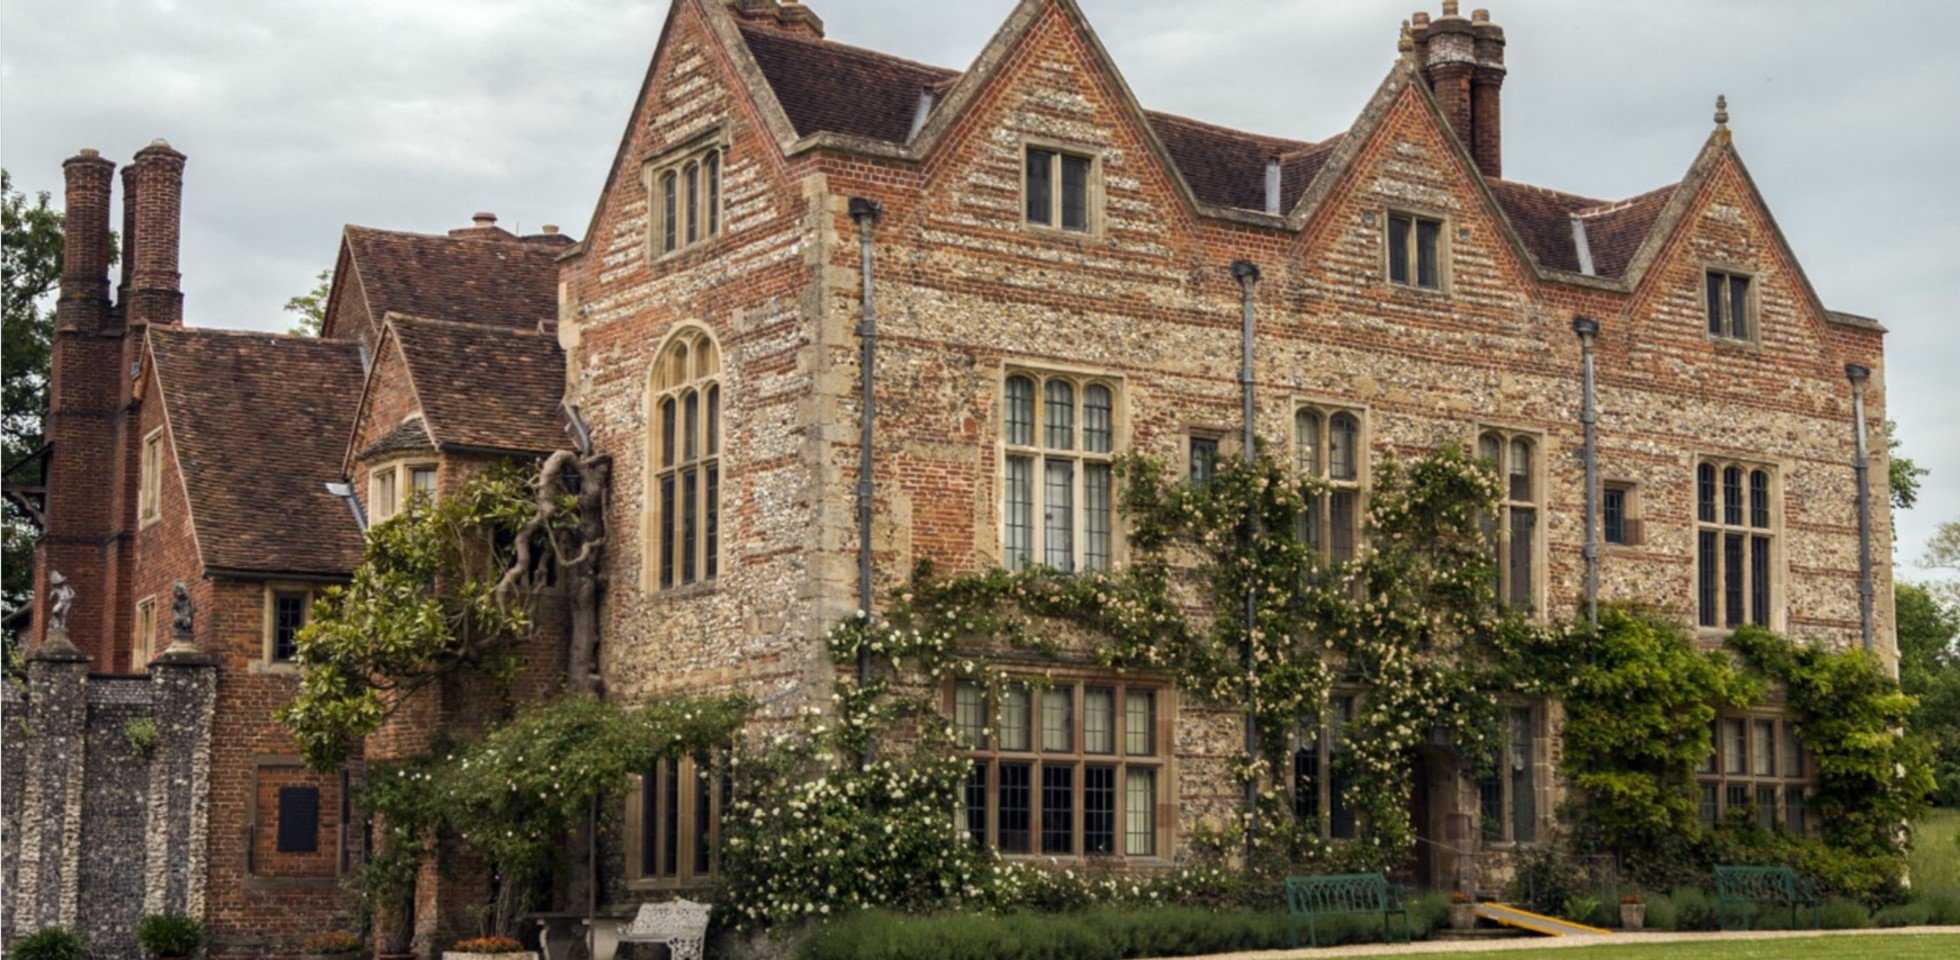 National Trust's Greys Court